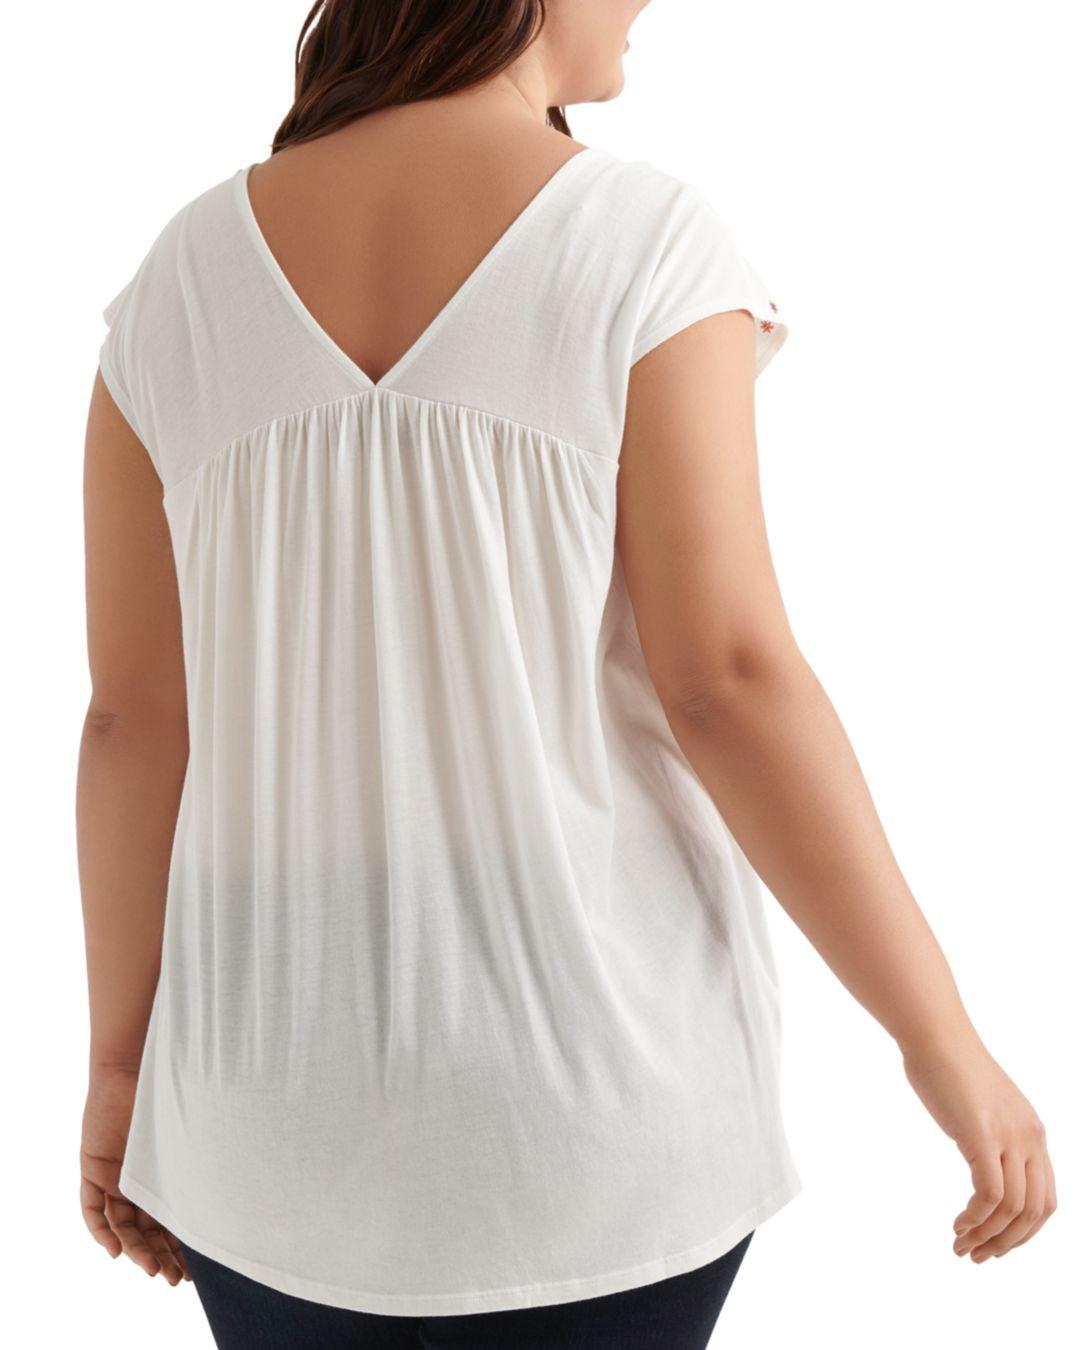 1bac59b7c452 Lyst - Lucky Brand Floral Embroidered Top in White